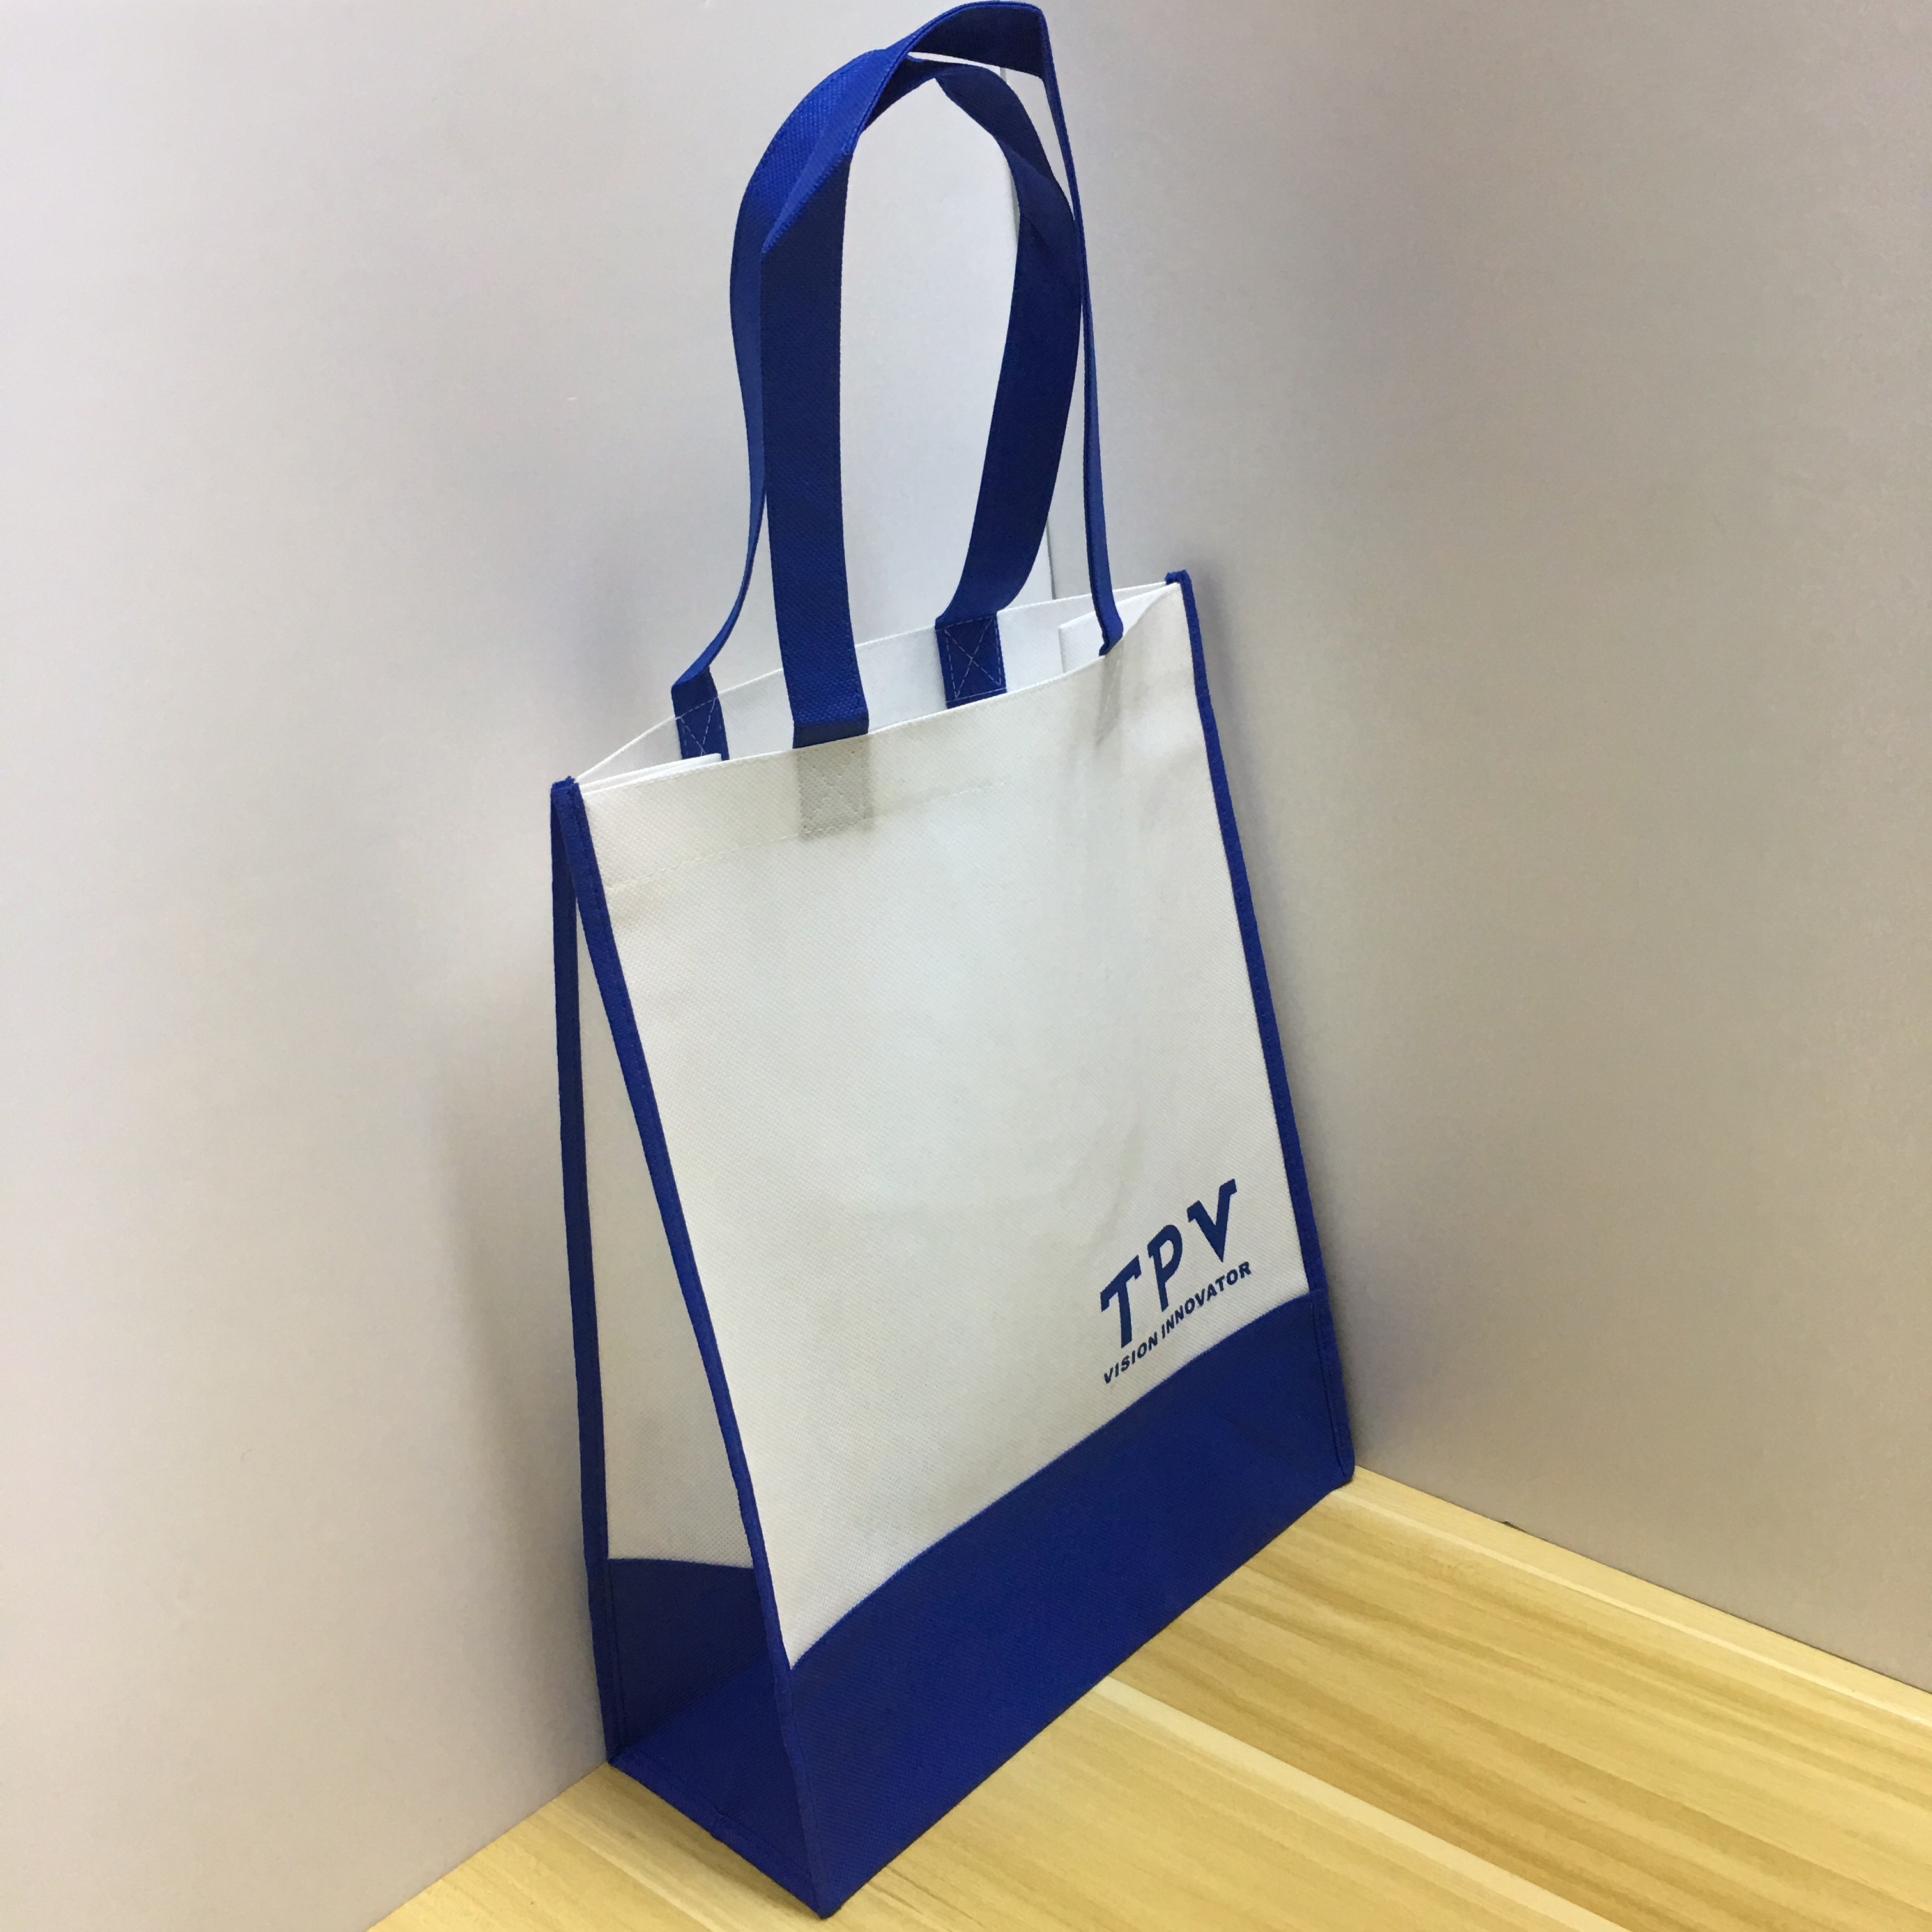 New & Hot sale recycle bag foldable